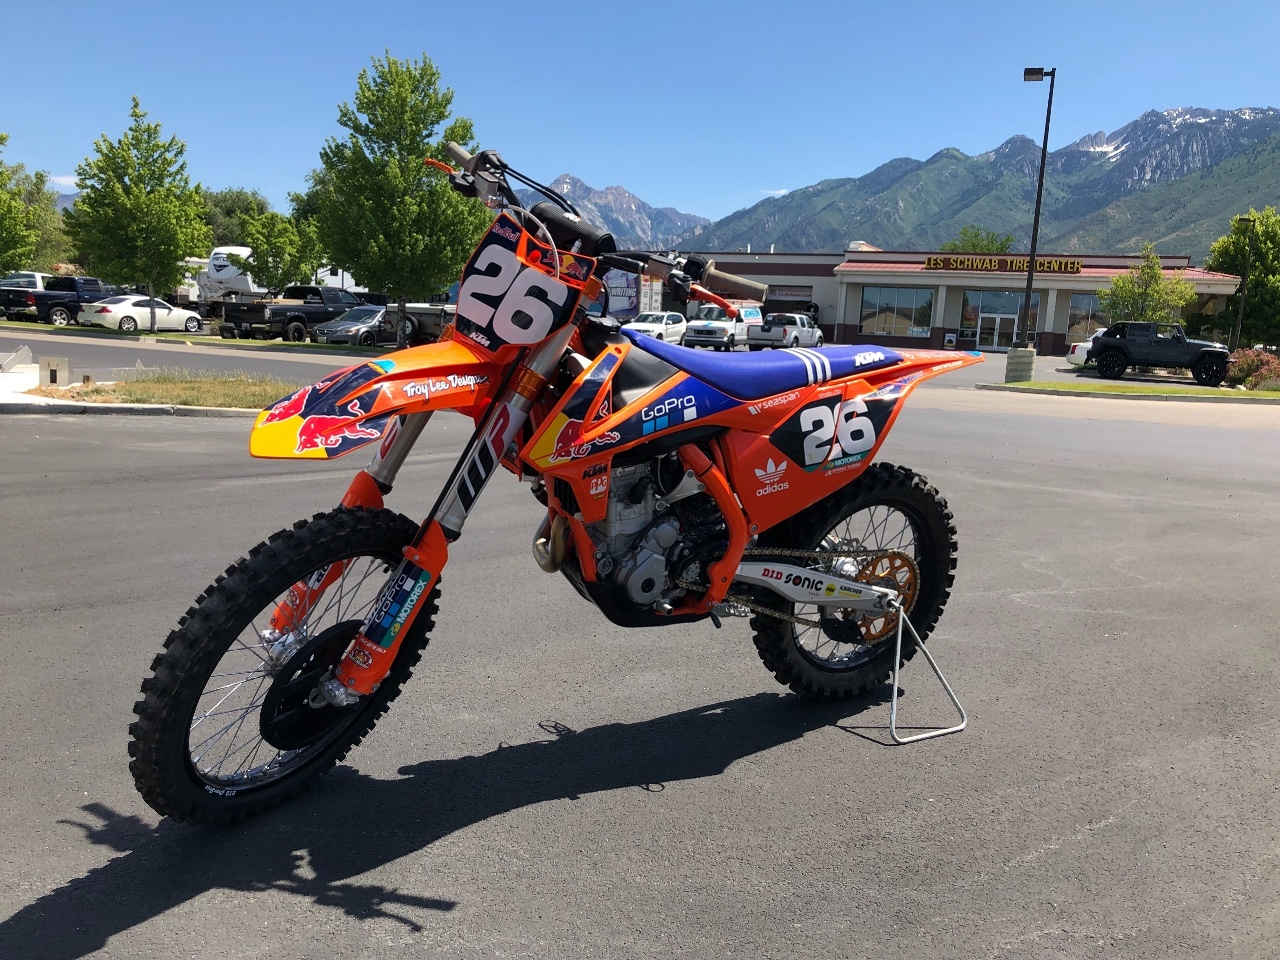 Used S For Sale - S DIRT BIKE Motorcycles - Cycle Trader